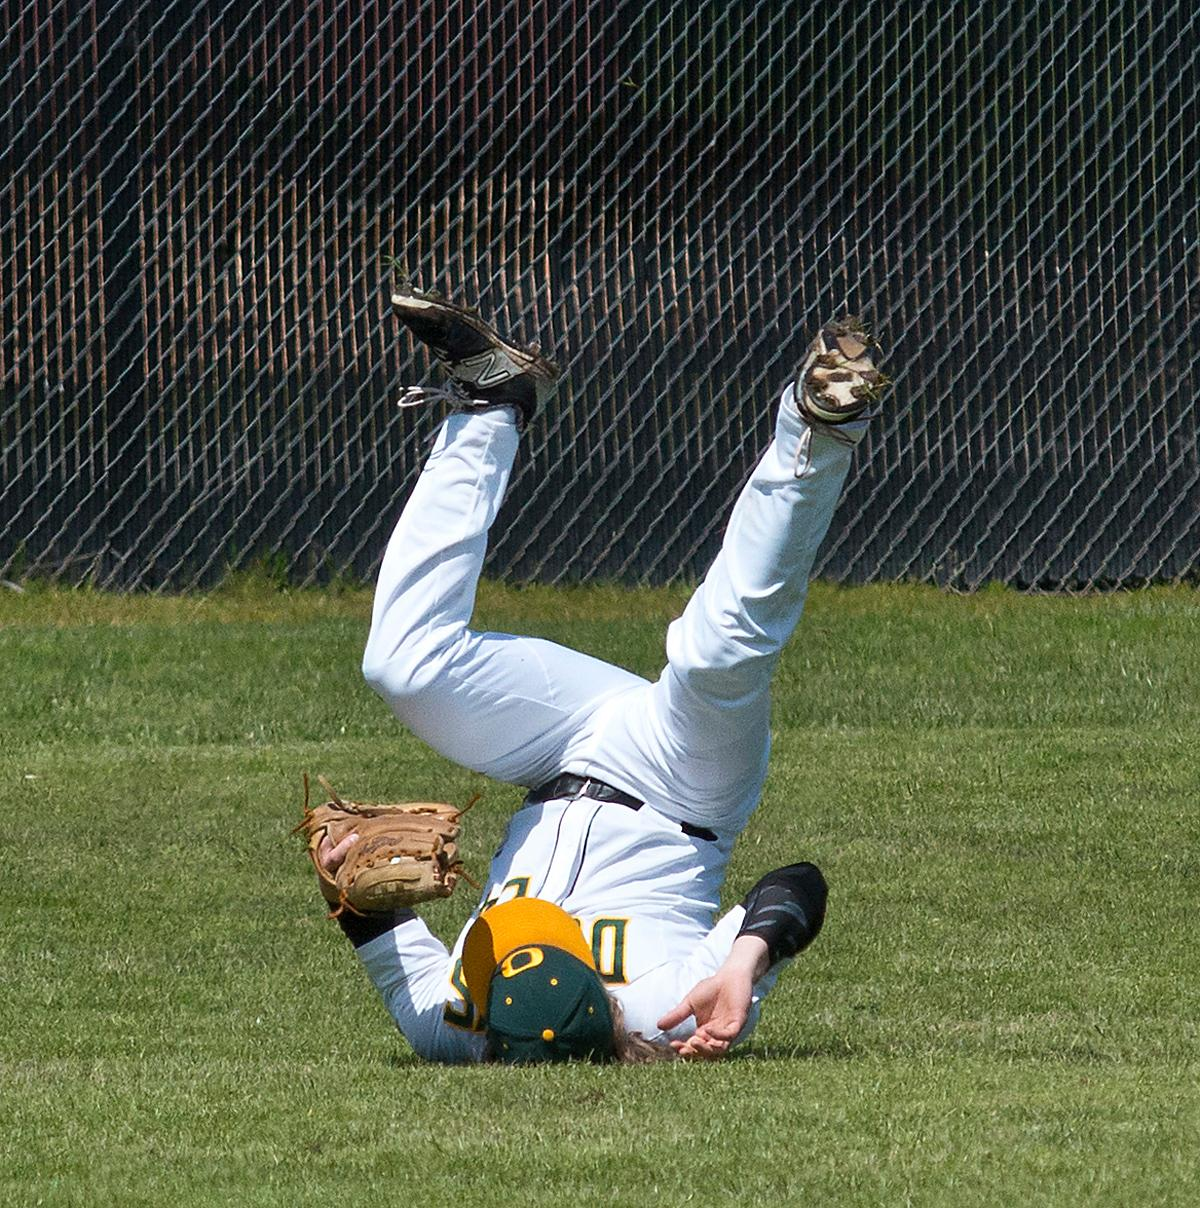 Oregon Djucks center fielder Logan Ballarche makes a diving catch. The Oregon Ducks won the Civil War series this weekend against the Oregon State Beavers. The Ducks won the first game 13-3, but lost the second game 12-0, then rebounding to win the third and deciding game 4-3. The Ducks Club baseball team finished the season with a league record of 14-1, taking first place. They now move on to the Regionals in Boise, Idaho, in two weeks. The Club team won the National Championship in 2015 and came in third nationally in 2016. Photo by Dan Morrison, Oregon News Lab